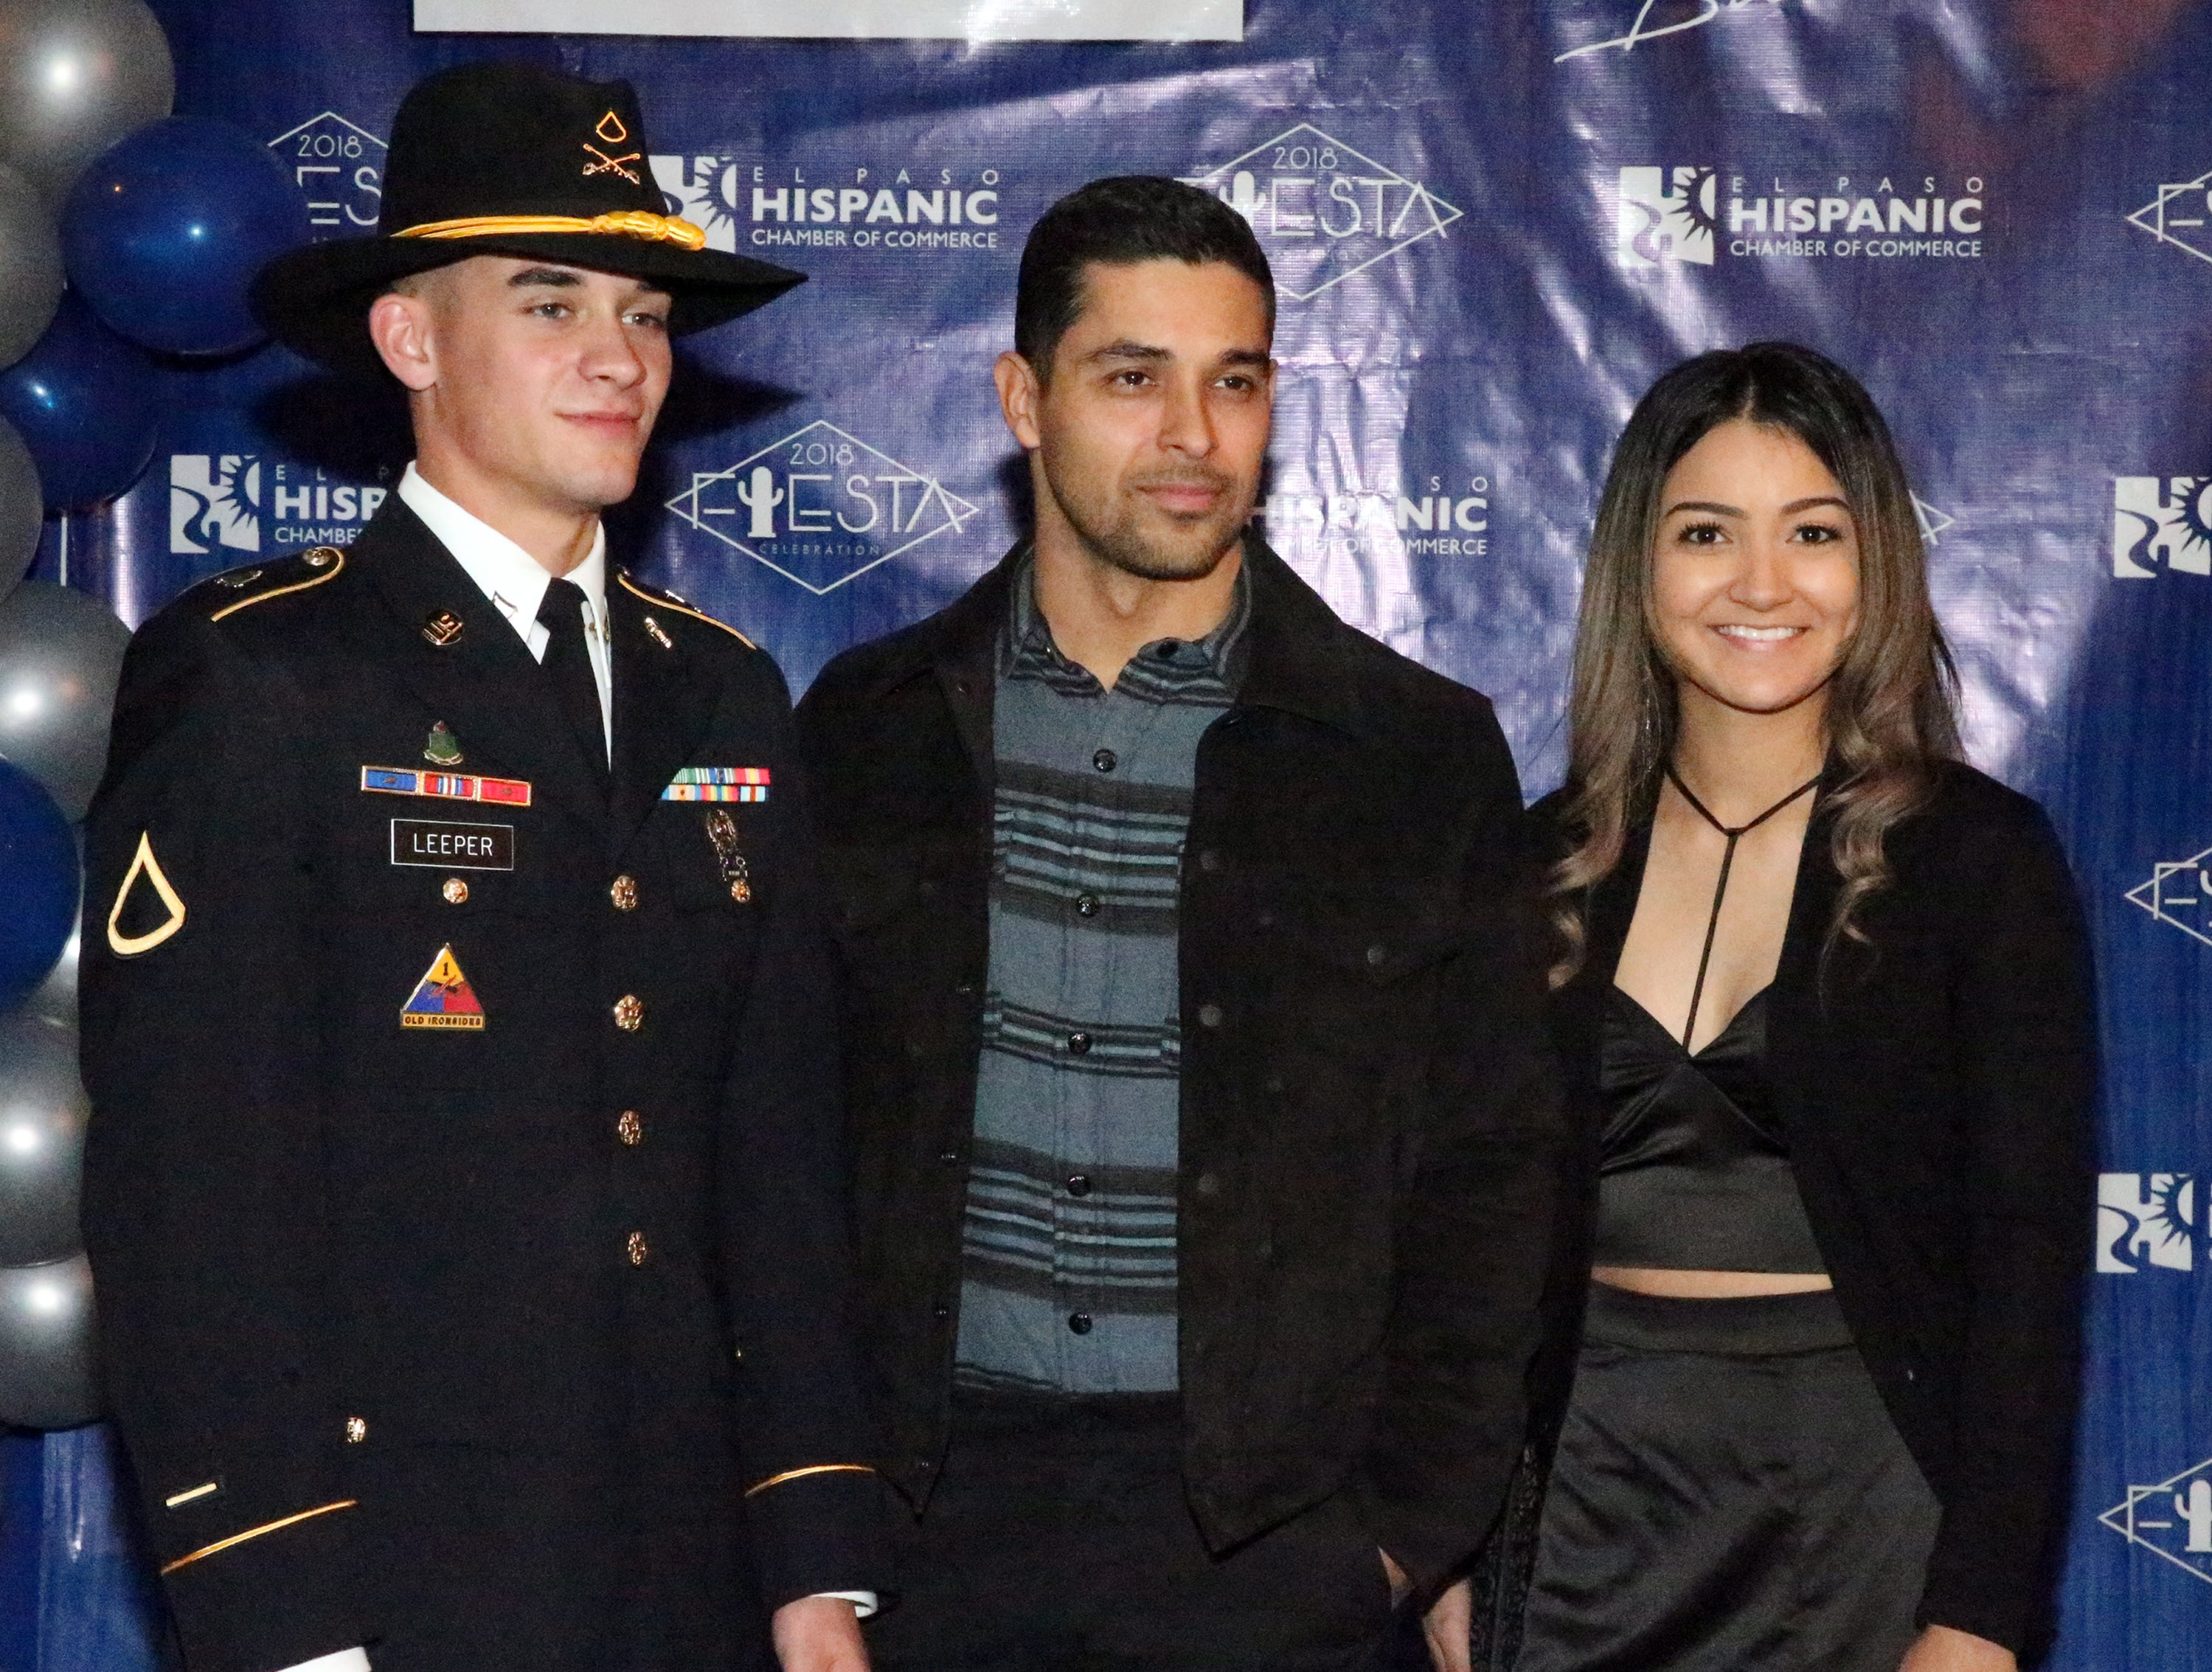 Actor/producer Wilmer Valderrama, center, poses with Pfc. Christopher Leeper and Lishme Becerra during a reception and greet at the 28th El Paso Hispanic Chamber of Commerce annual Fiesta Celebration Saturday night at the Centennial Banquet and Conference Center at Fort Bliss.